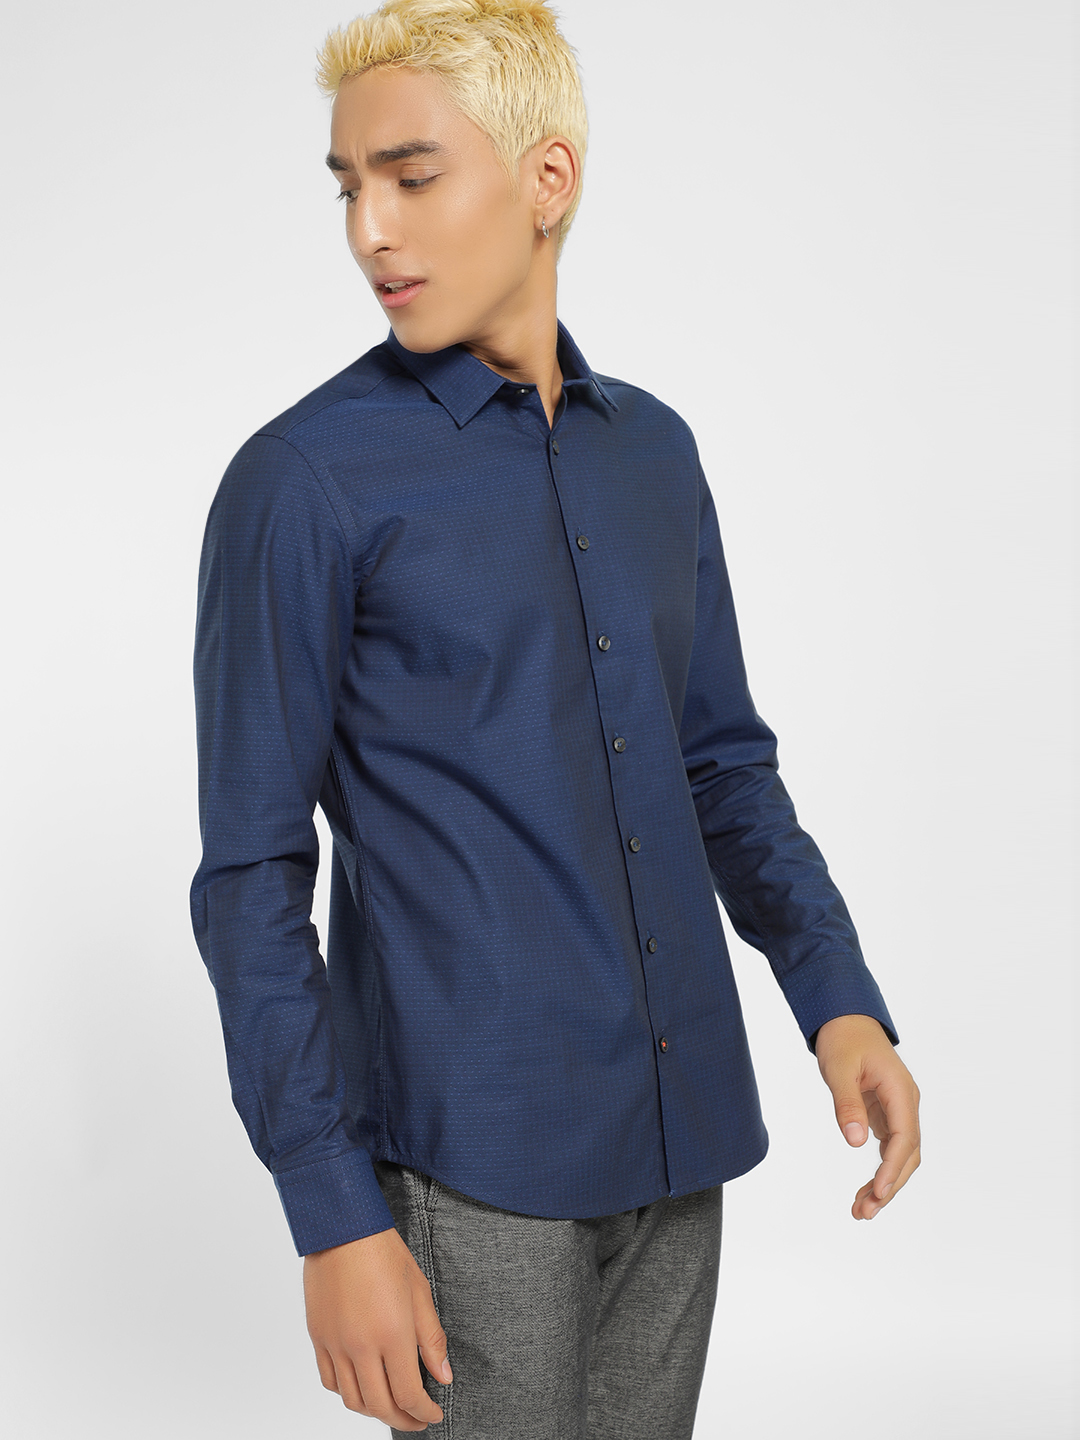 SCULLERS Blue Woven Slim Fit Casual Shirt 1